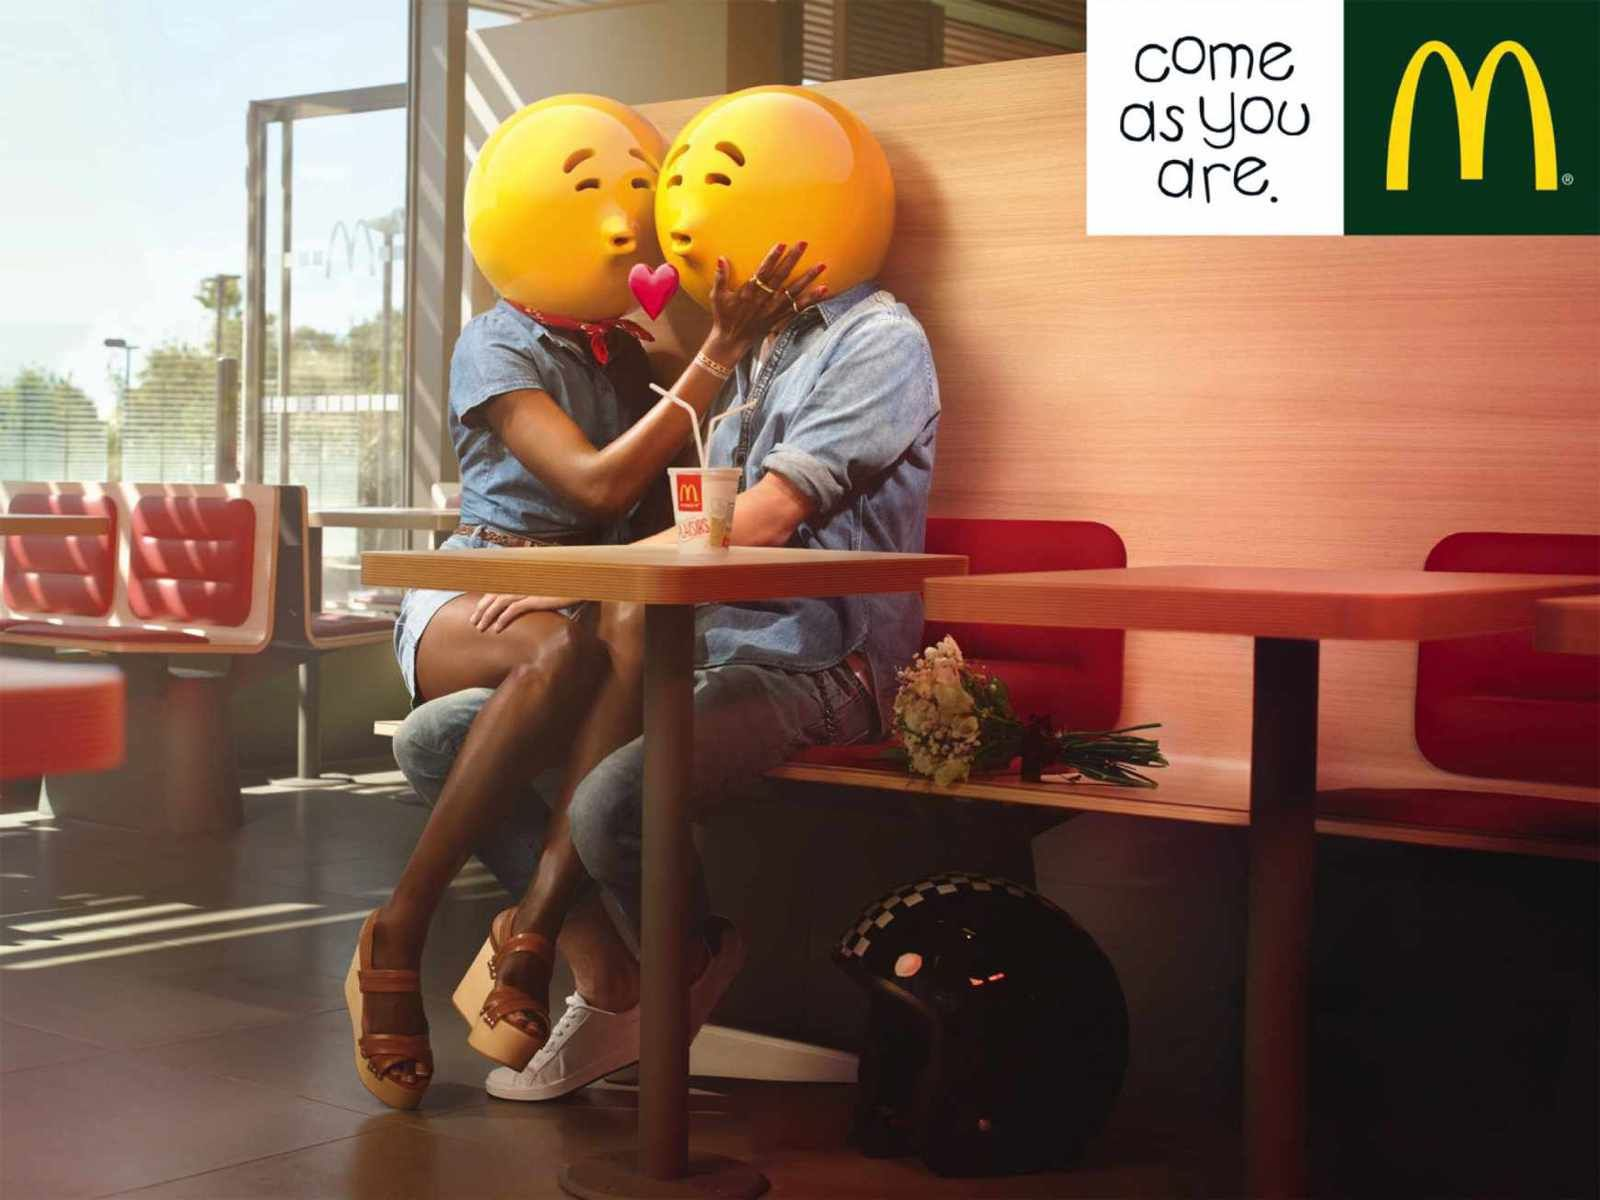 """Come as you are"" 